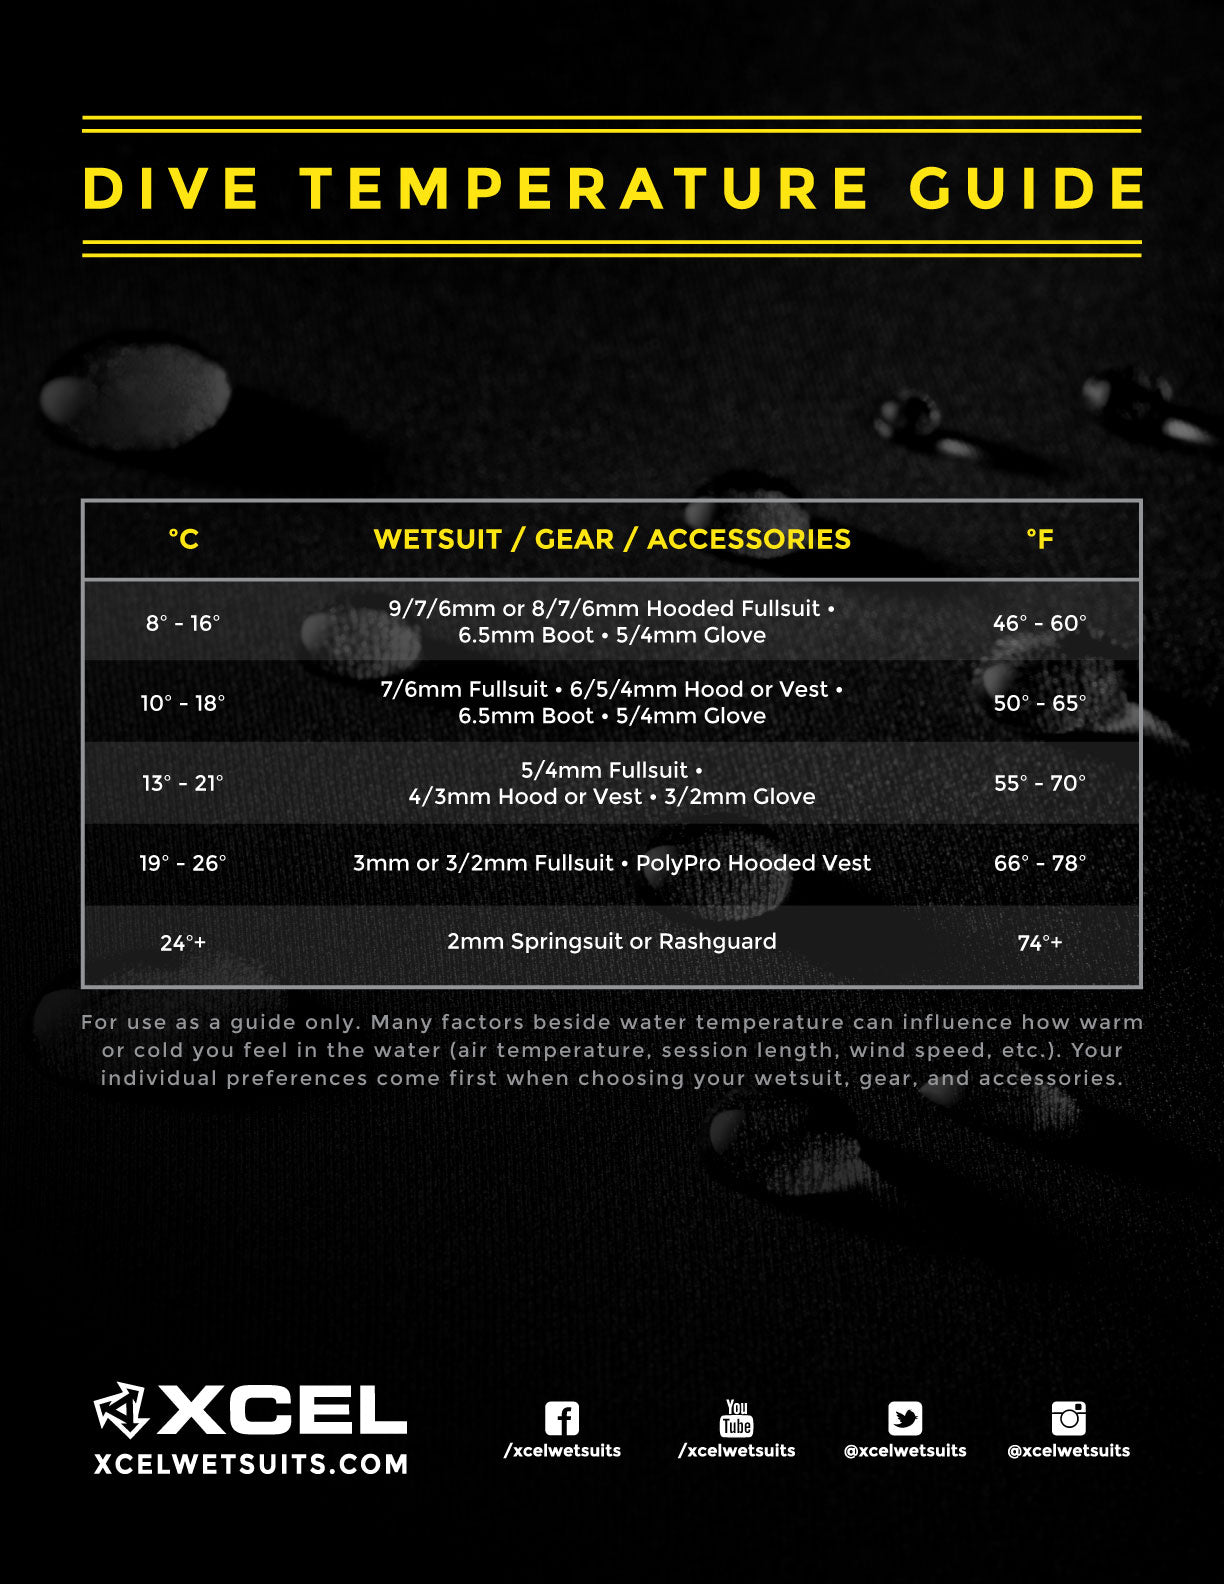 DIVE TEMPERATURE GUIDE